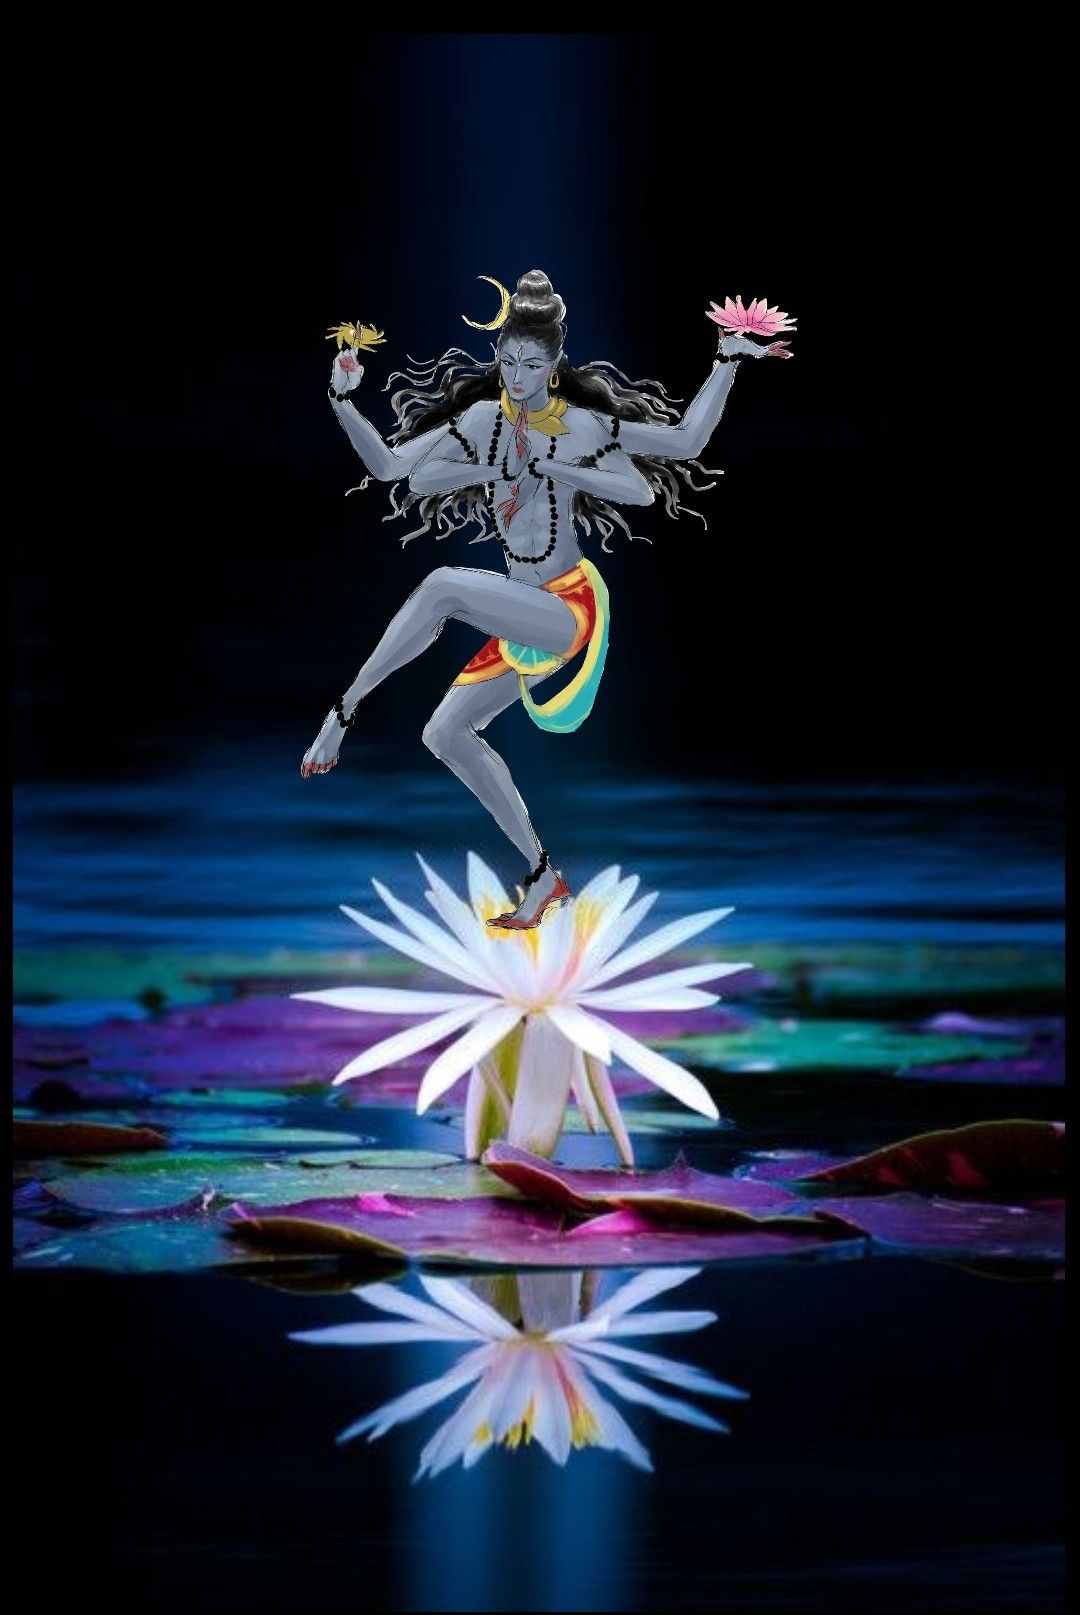 lord shiva as nataraj in creative art painting shiva pinterest rh pinterest com creative art 15517 creative art events